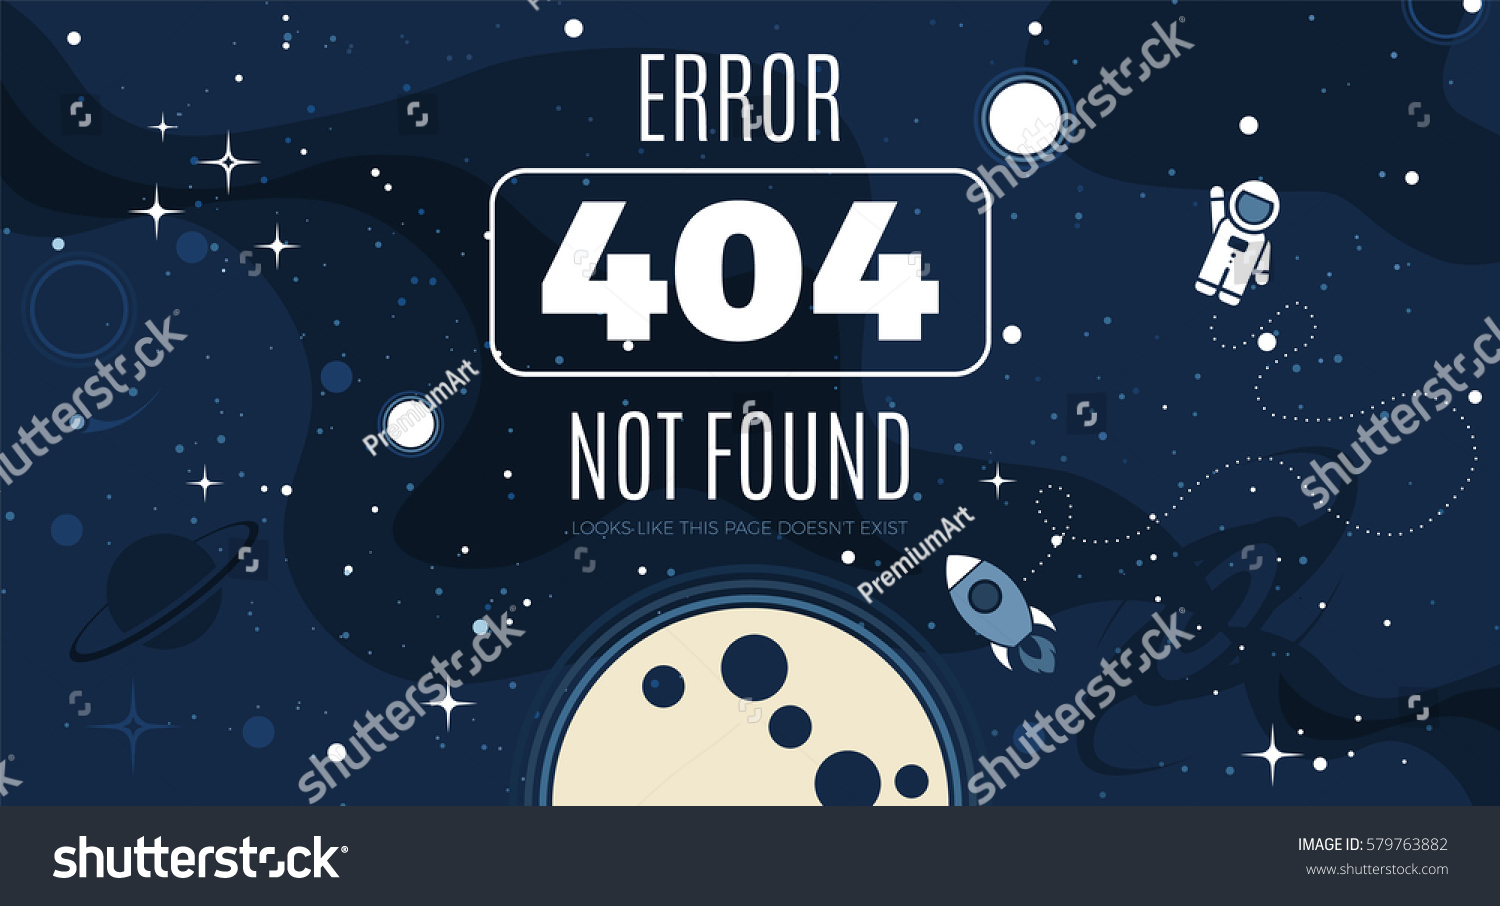 Background image 404 not found - Vector Flat Cosmos Design Background With Error 404 Page Not Found Text Cute Template